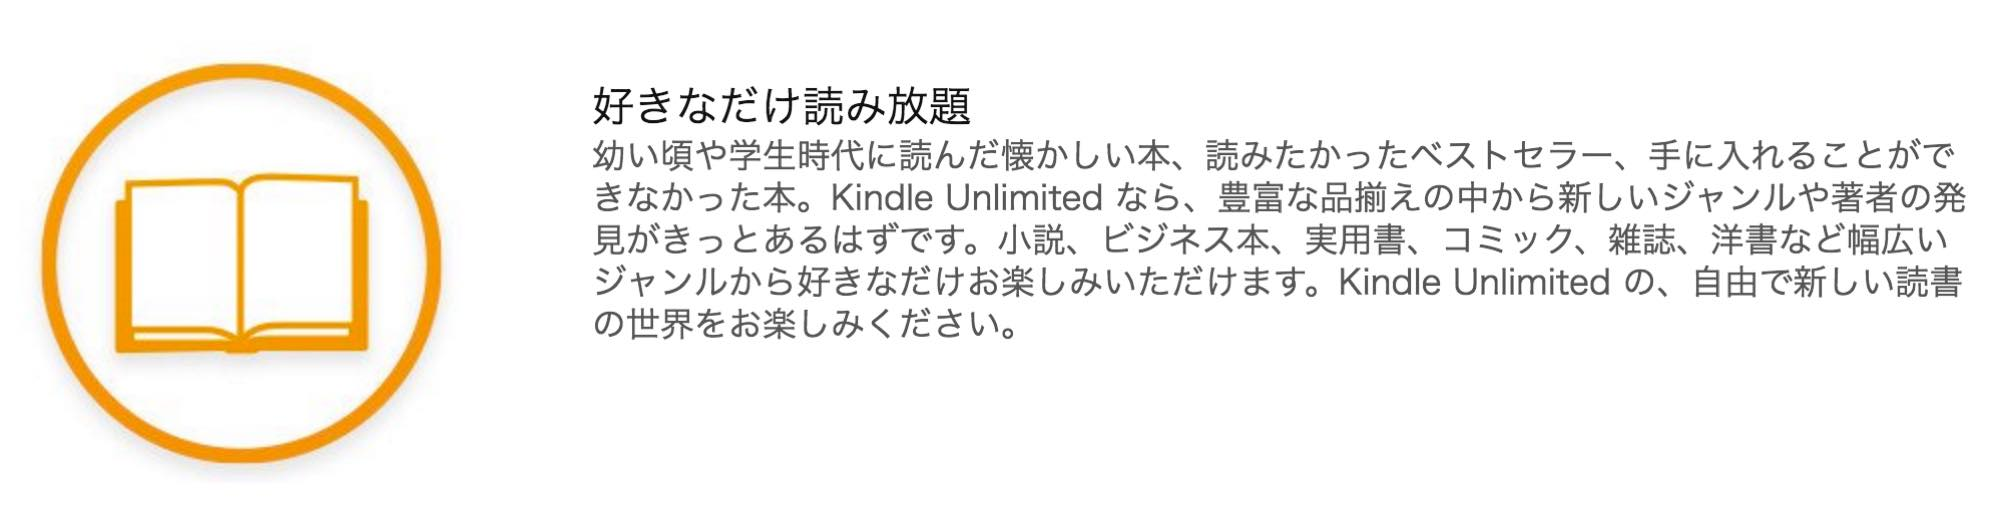 kindle-unlimited3